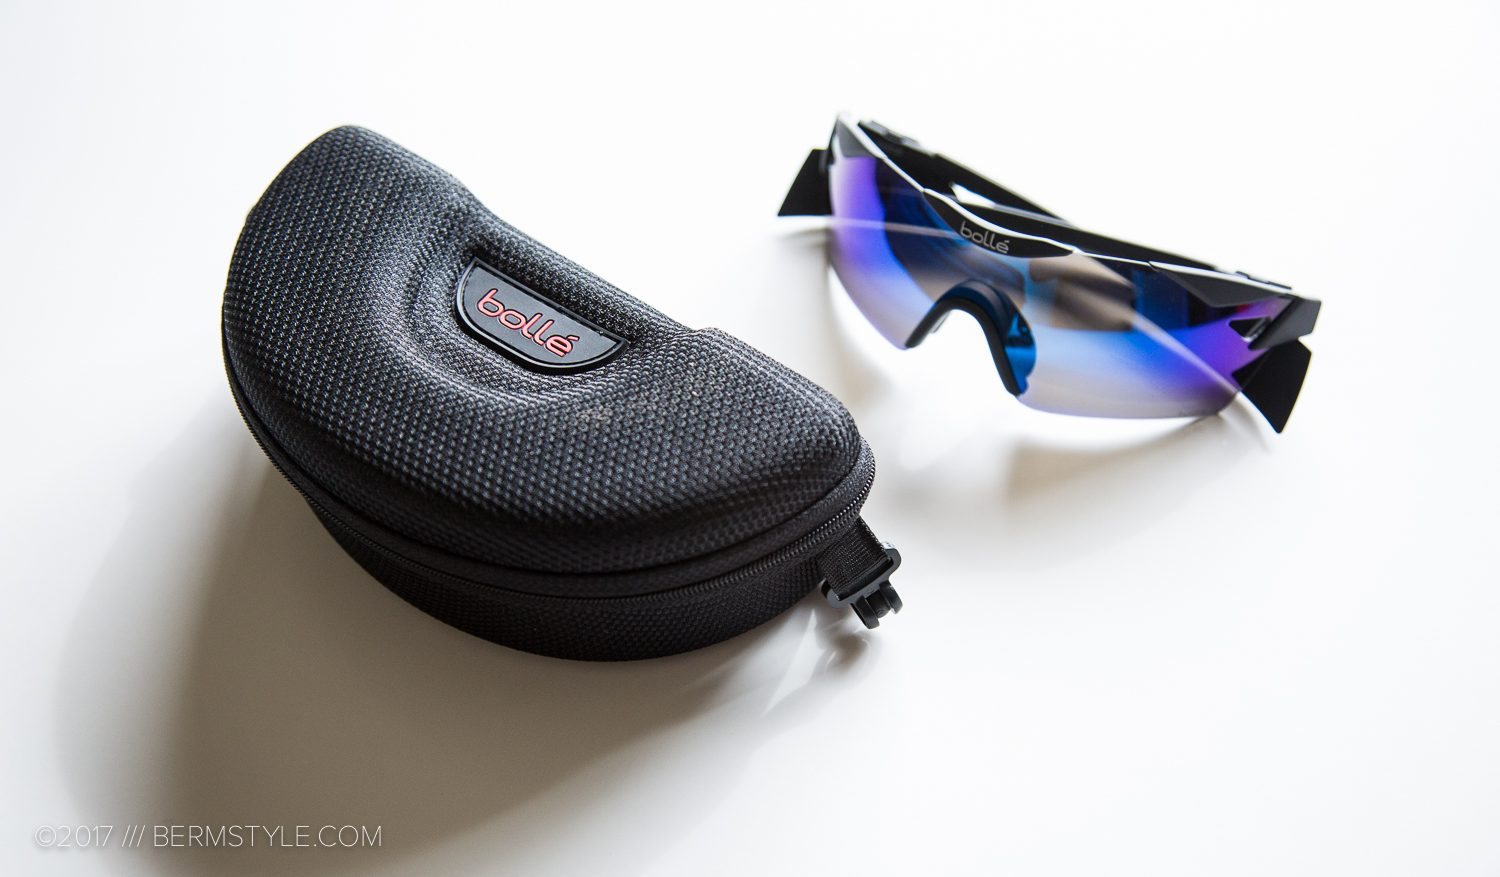 The Bolle 6th Sense glasses included a nice hardcase, bag and cleaning cloth.